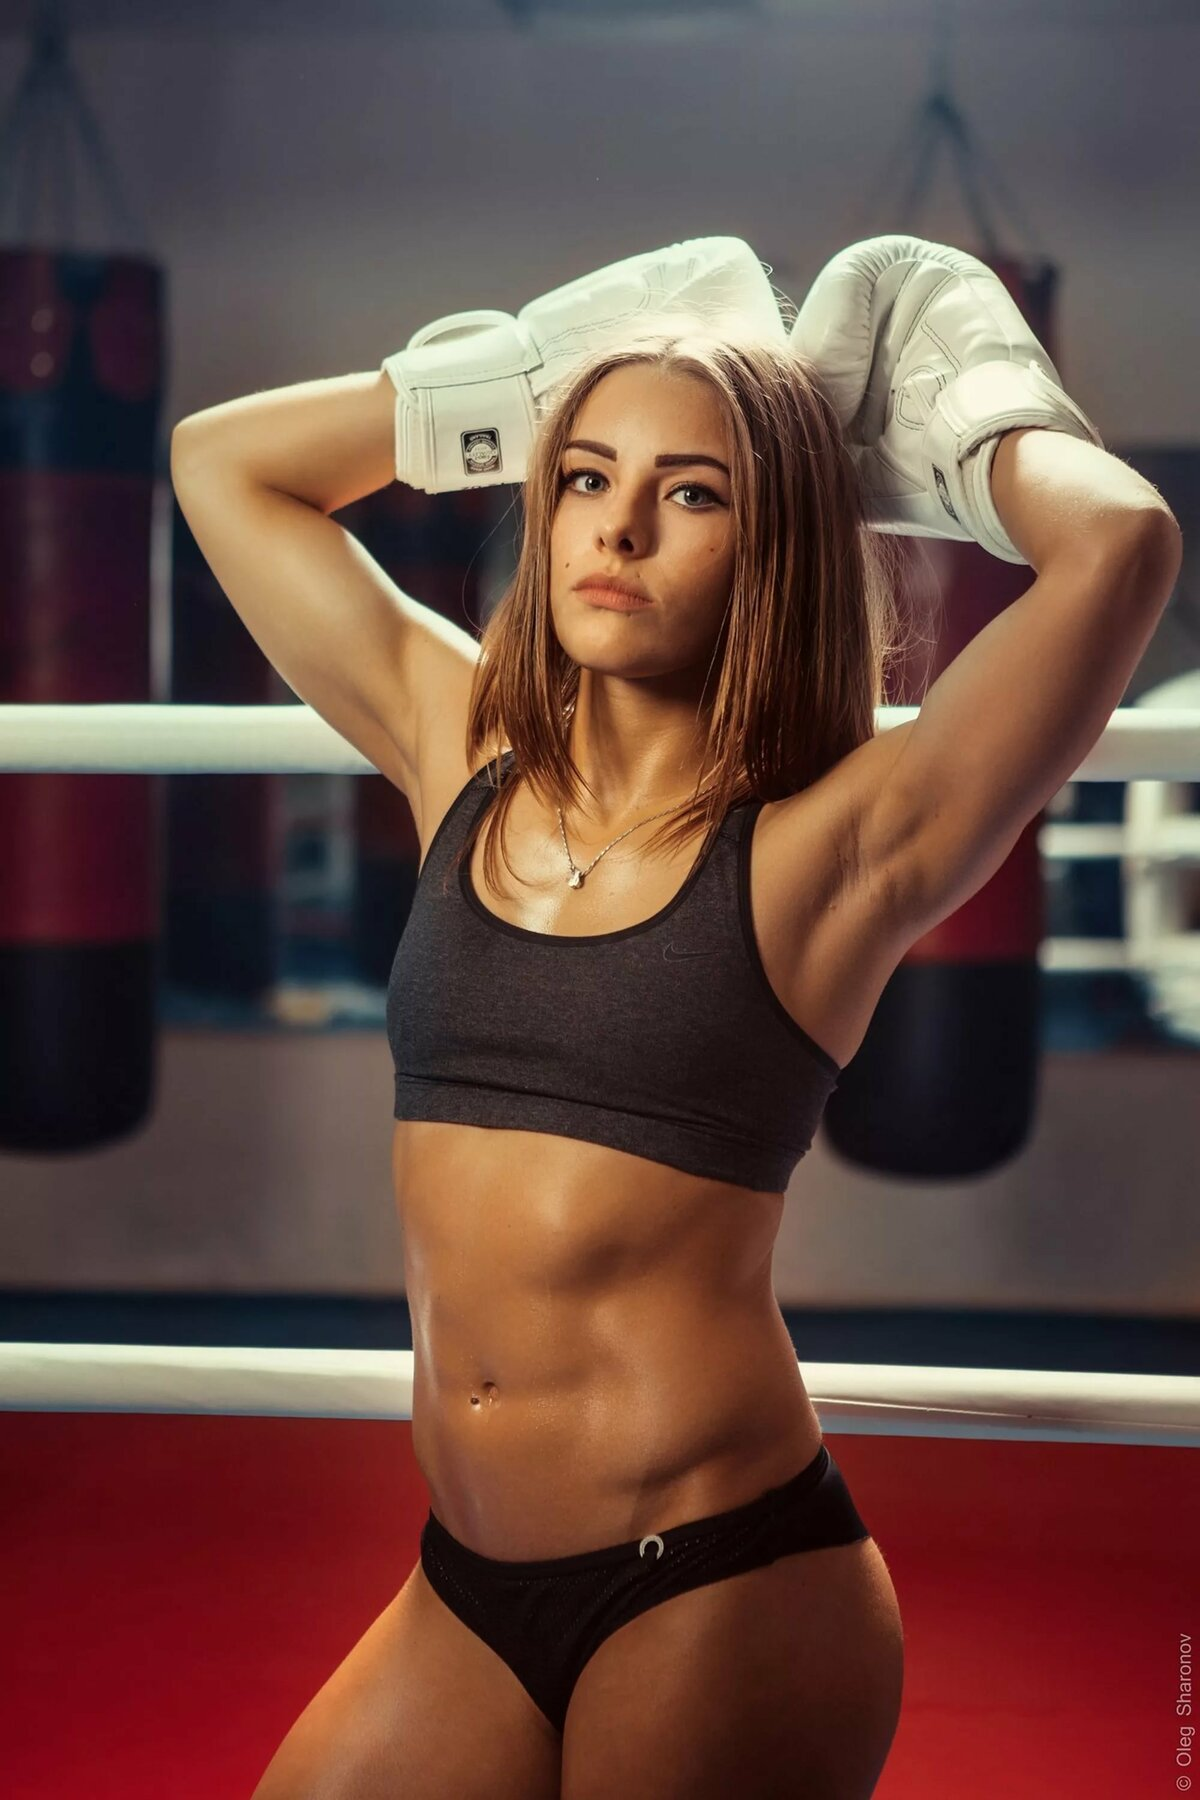 Nude Boxing Video